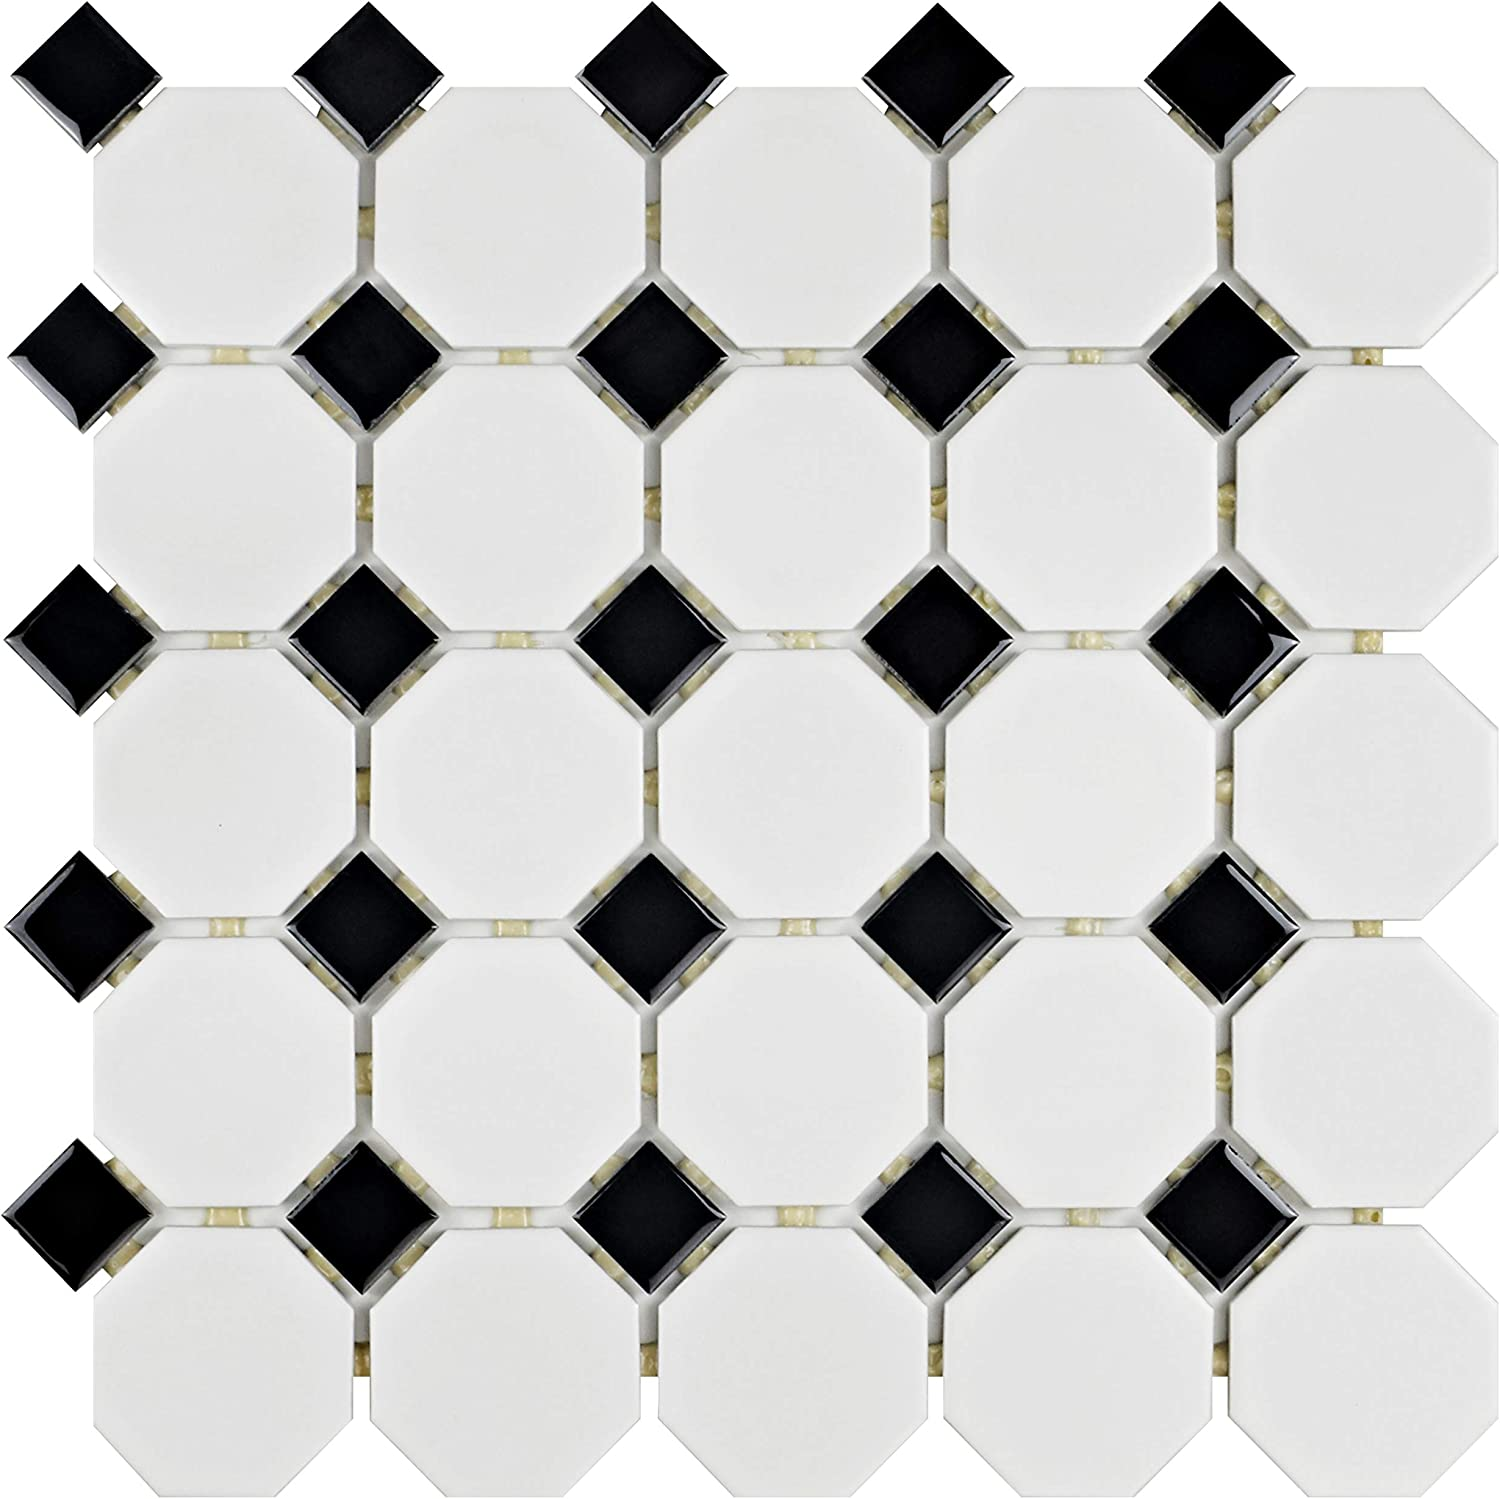 """SomerTile FXLM7OWD Retro Octagon Porcelain Floor and Wall Tile, 7.7"""" x  7.7"""", Matte White with Glossy Black Dot"""